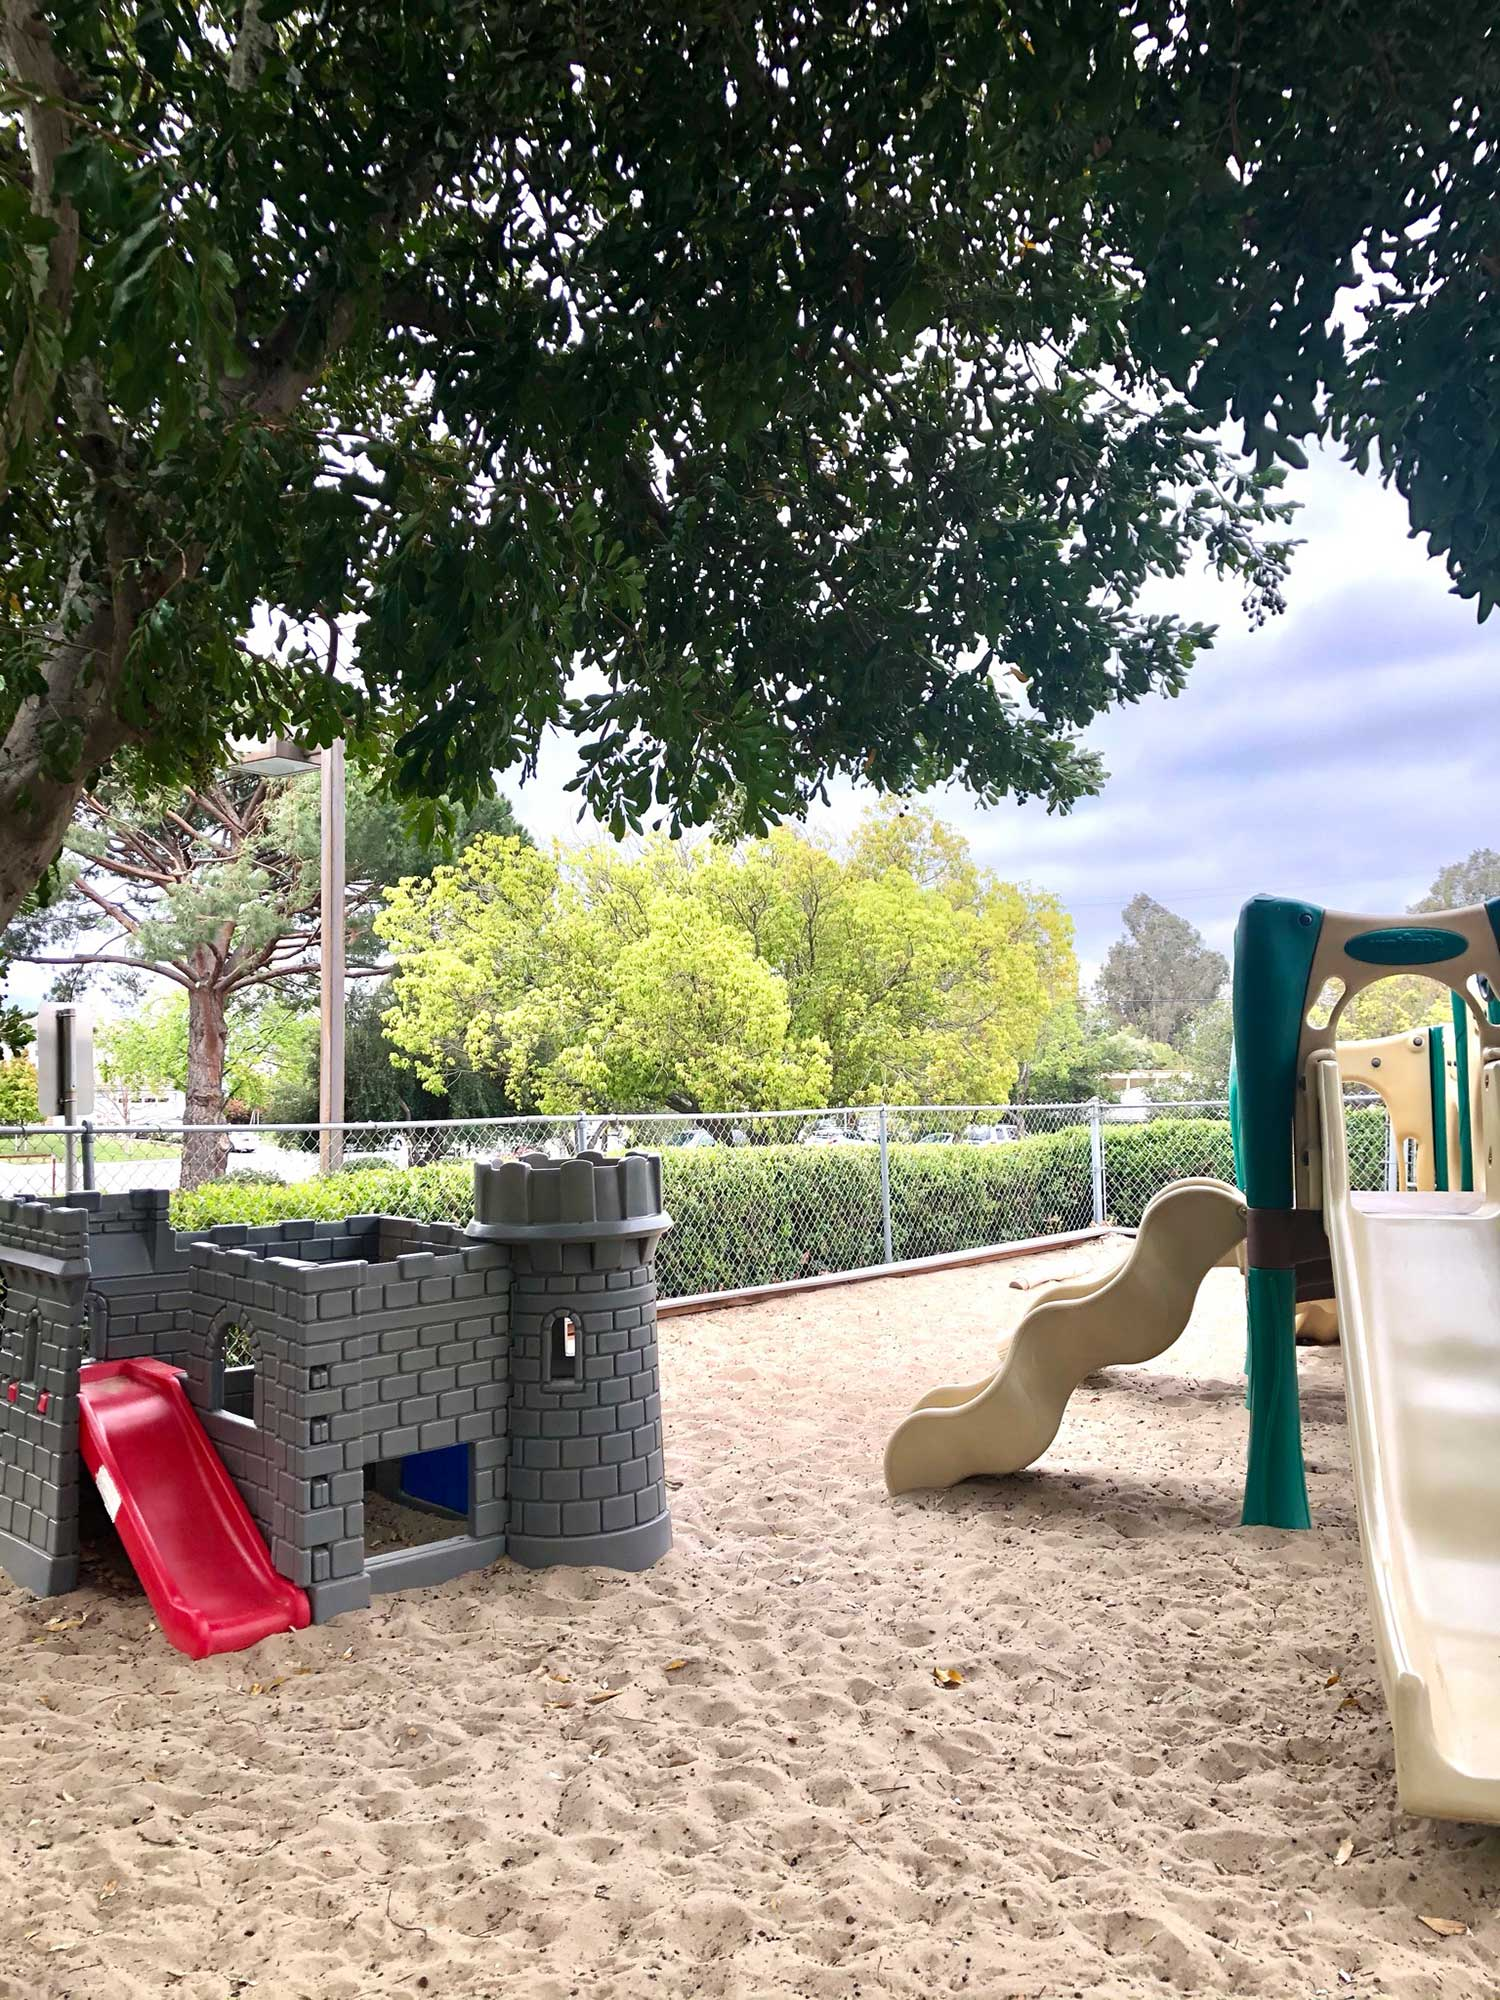 Play Castle and Play Structure in Sand Pit